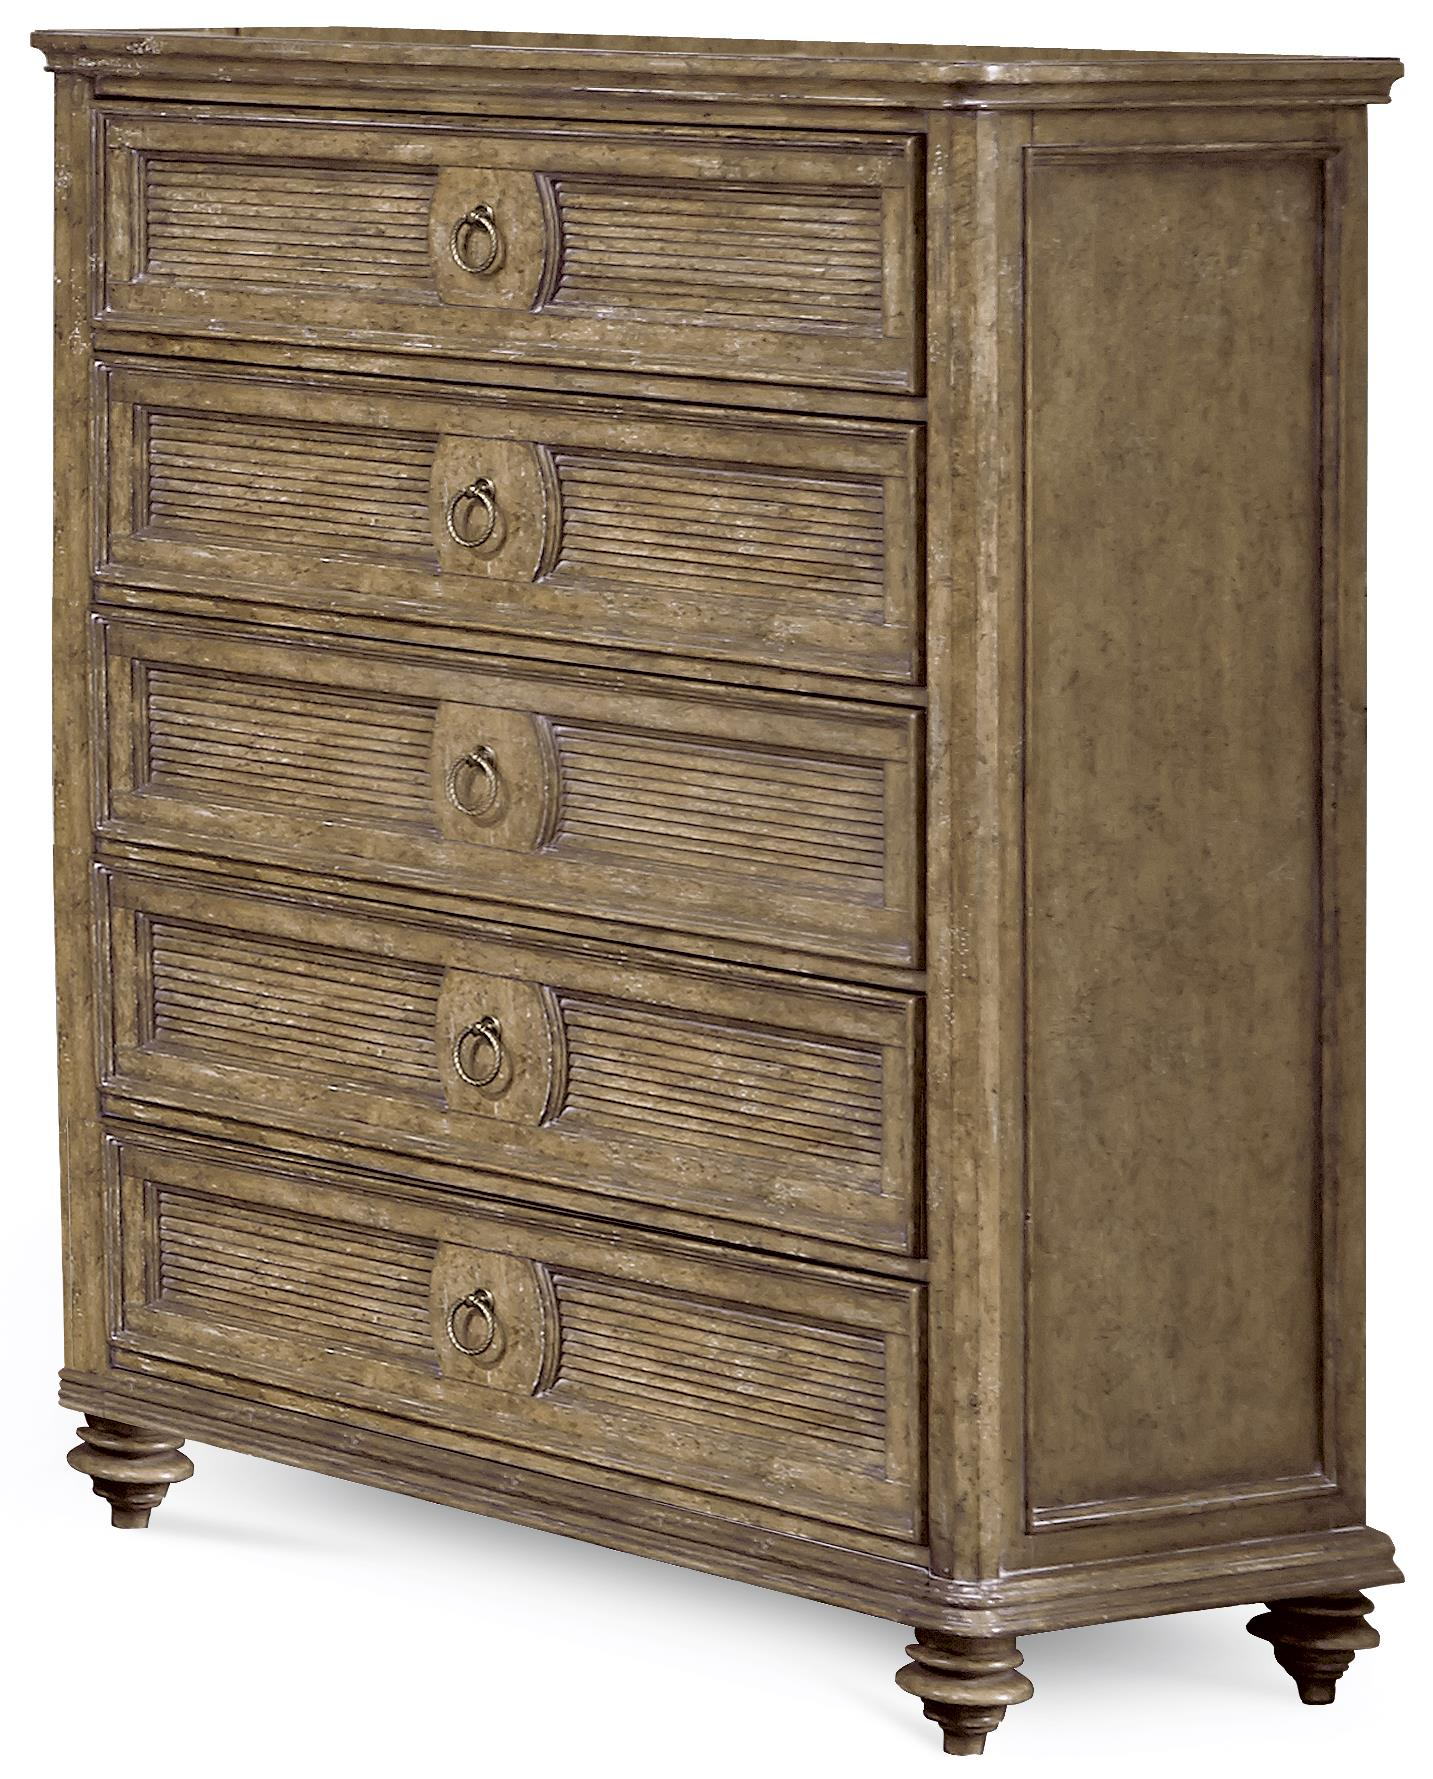 A.R.T. Furniture Inc Pavilion Drawer Chest - Item Number: 229150-2608